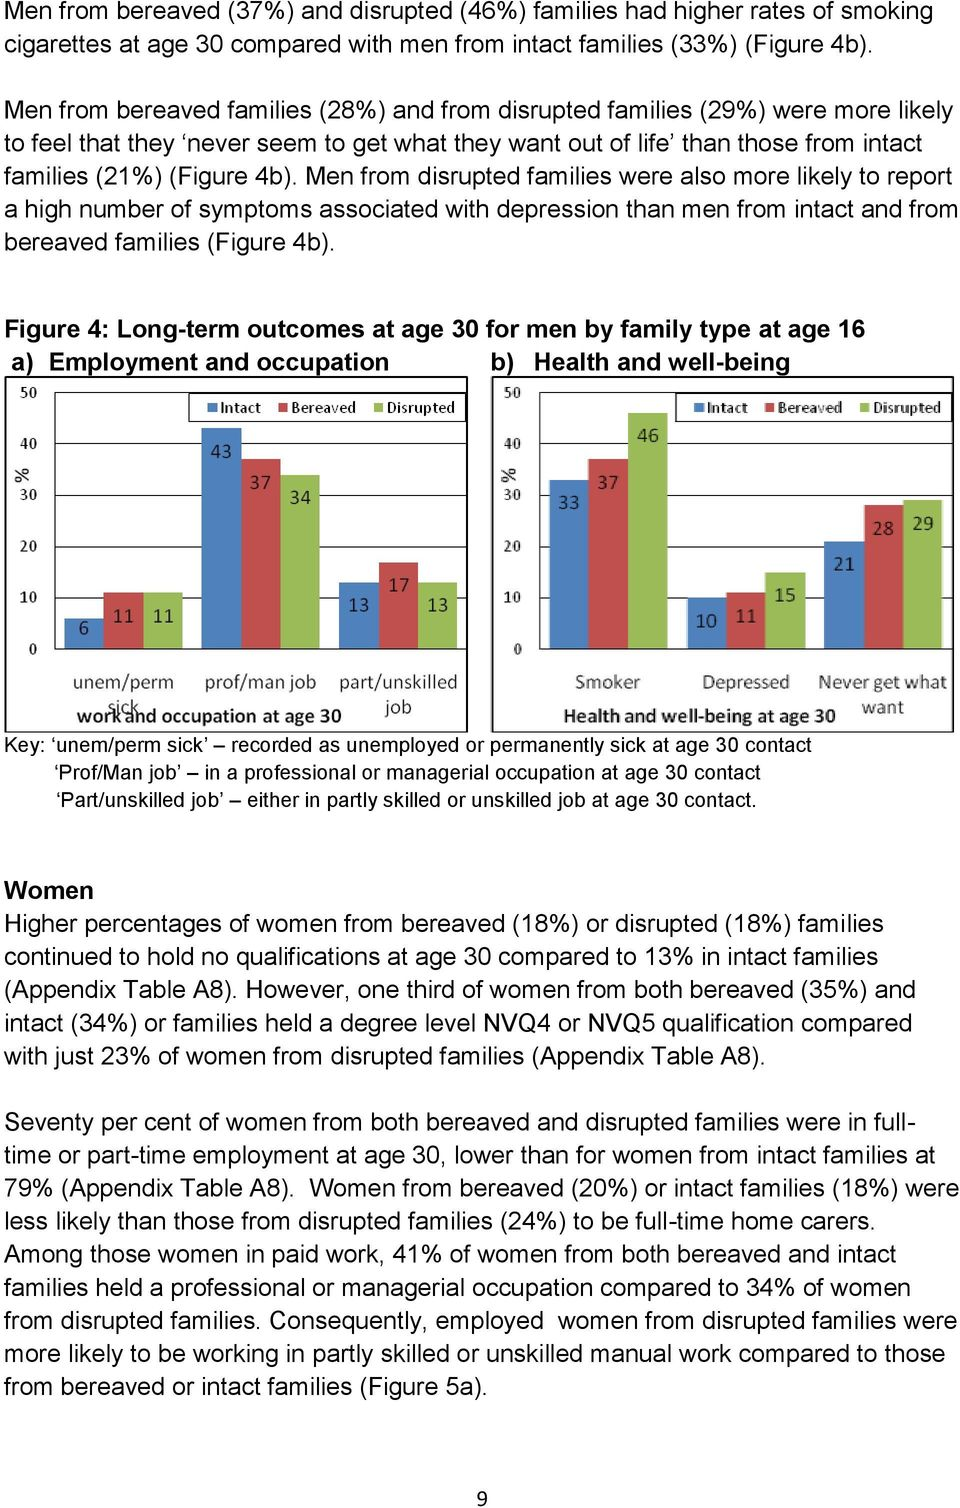 Men from disrupted families were also more likely to report a high number of symptoms associated with depression than men from intact and from bereaved families (Figure 4b).